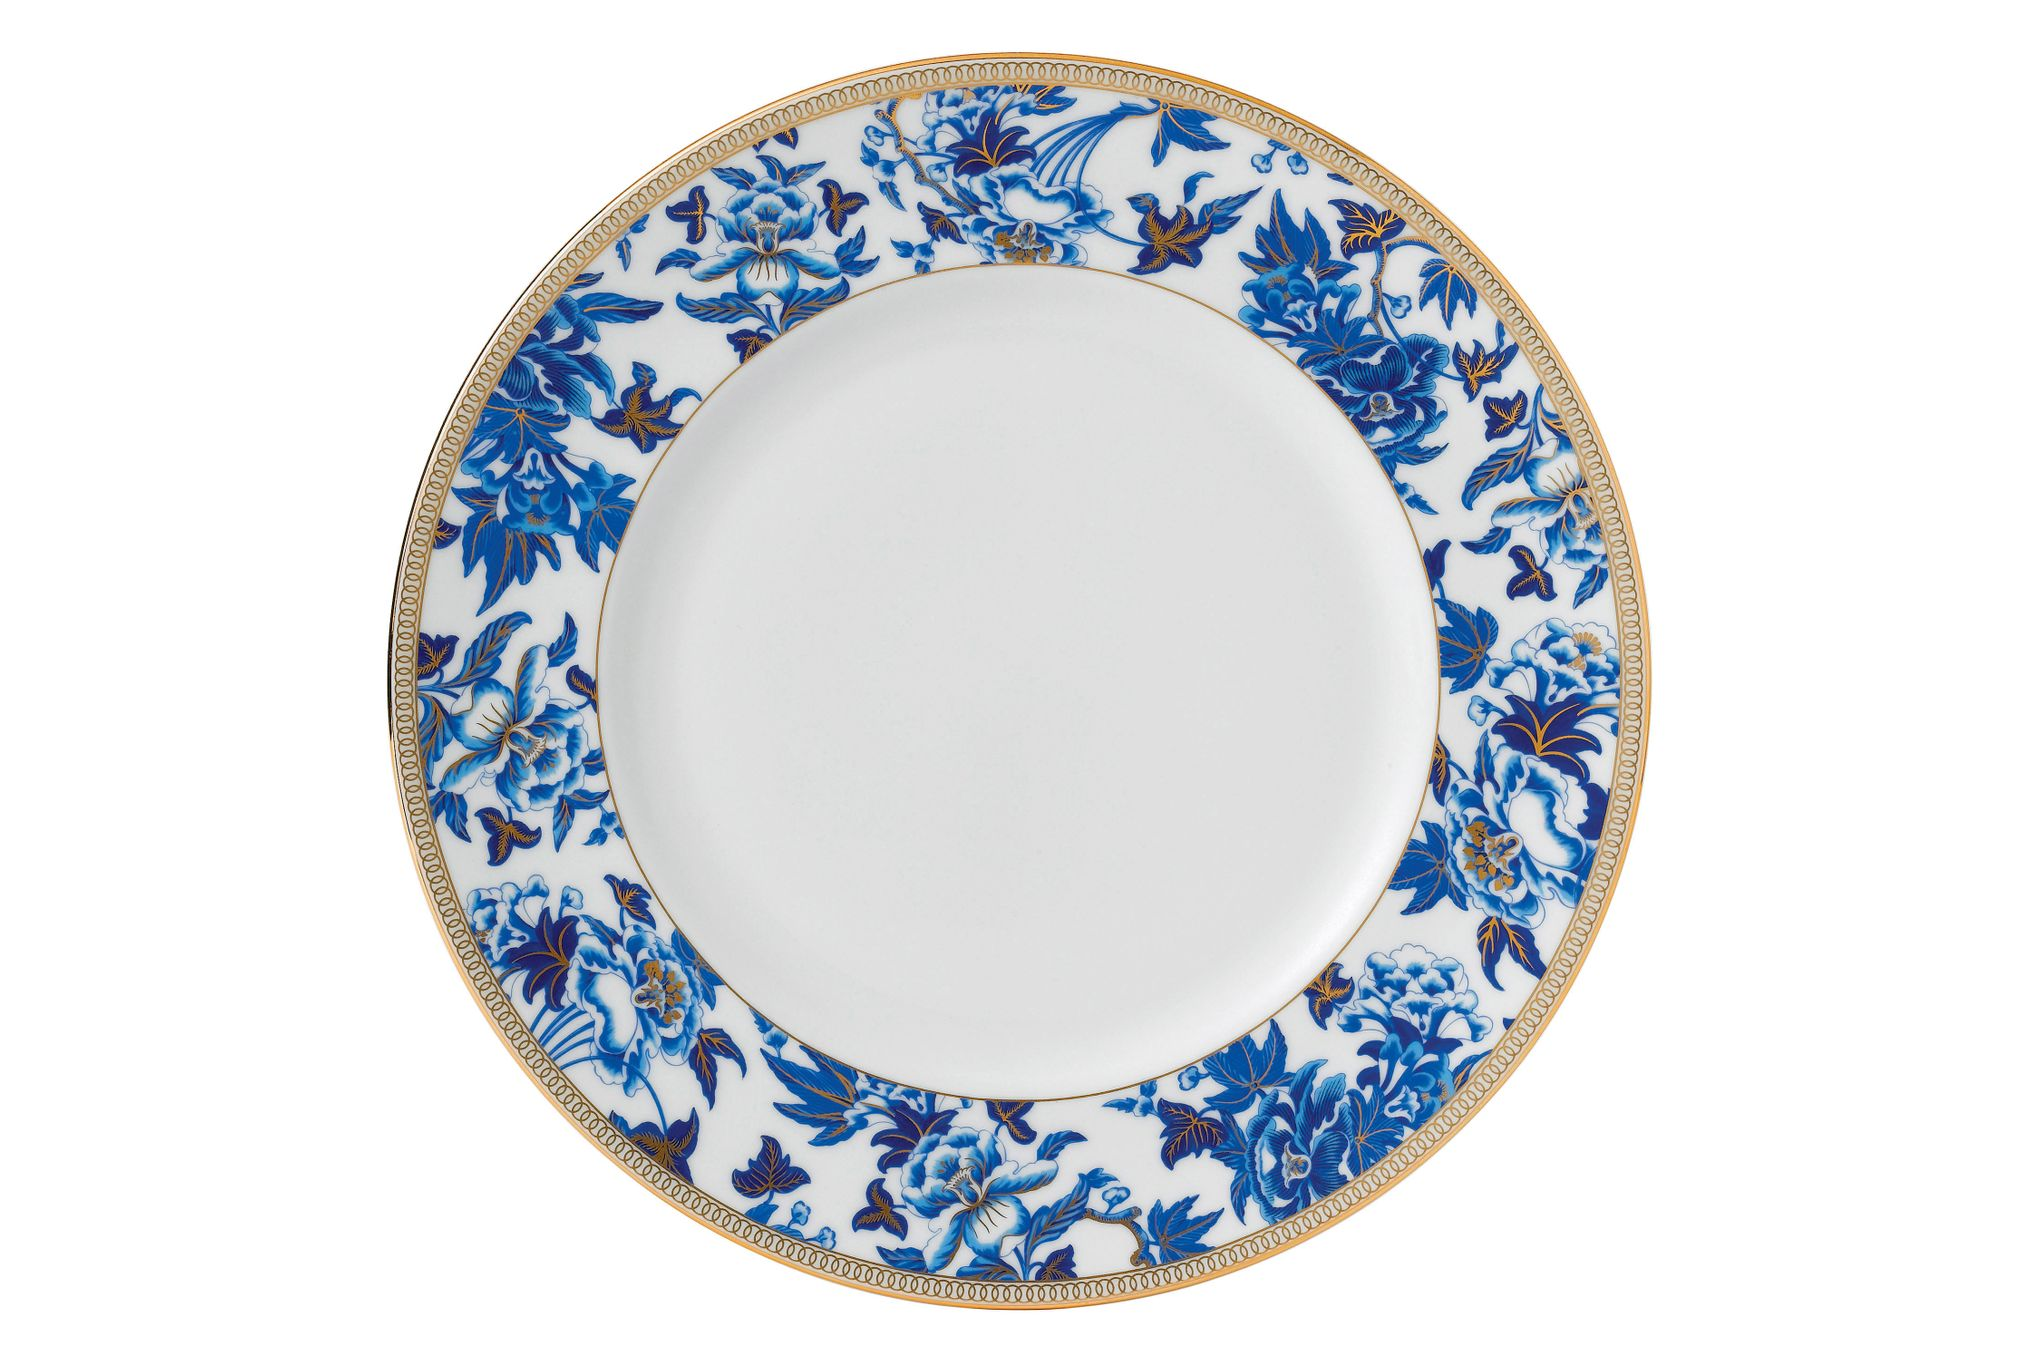 Wedgwood Hibiscus Dinner Plate Floral 27cm thumb 1